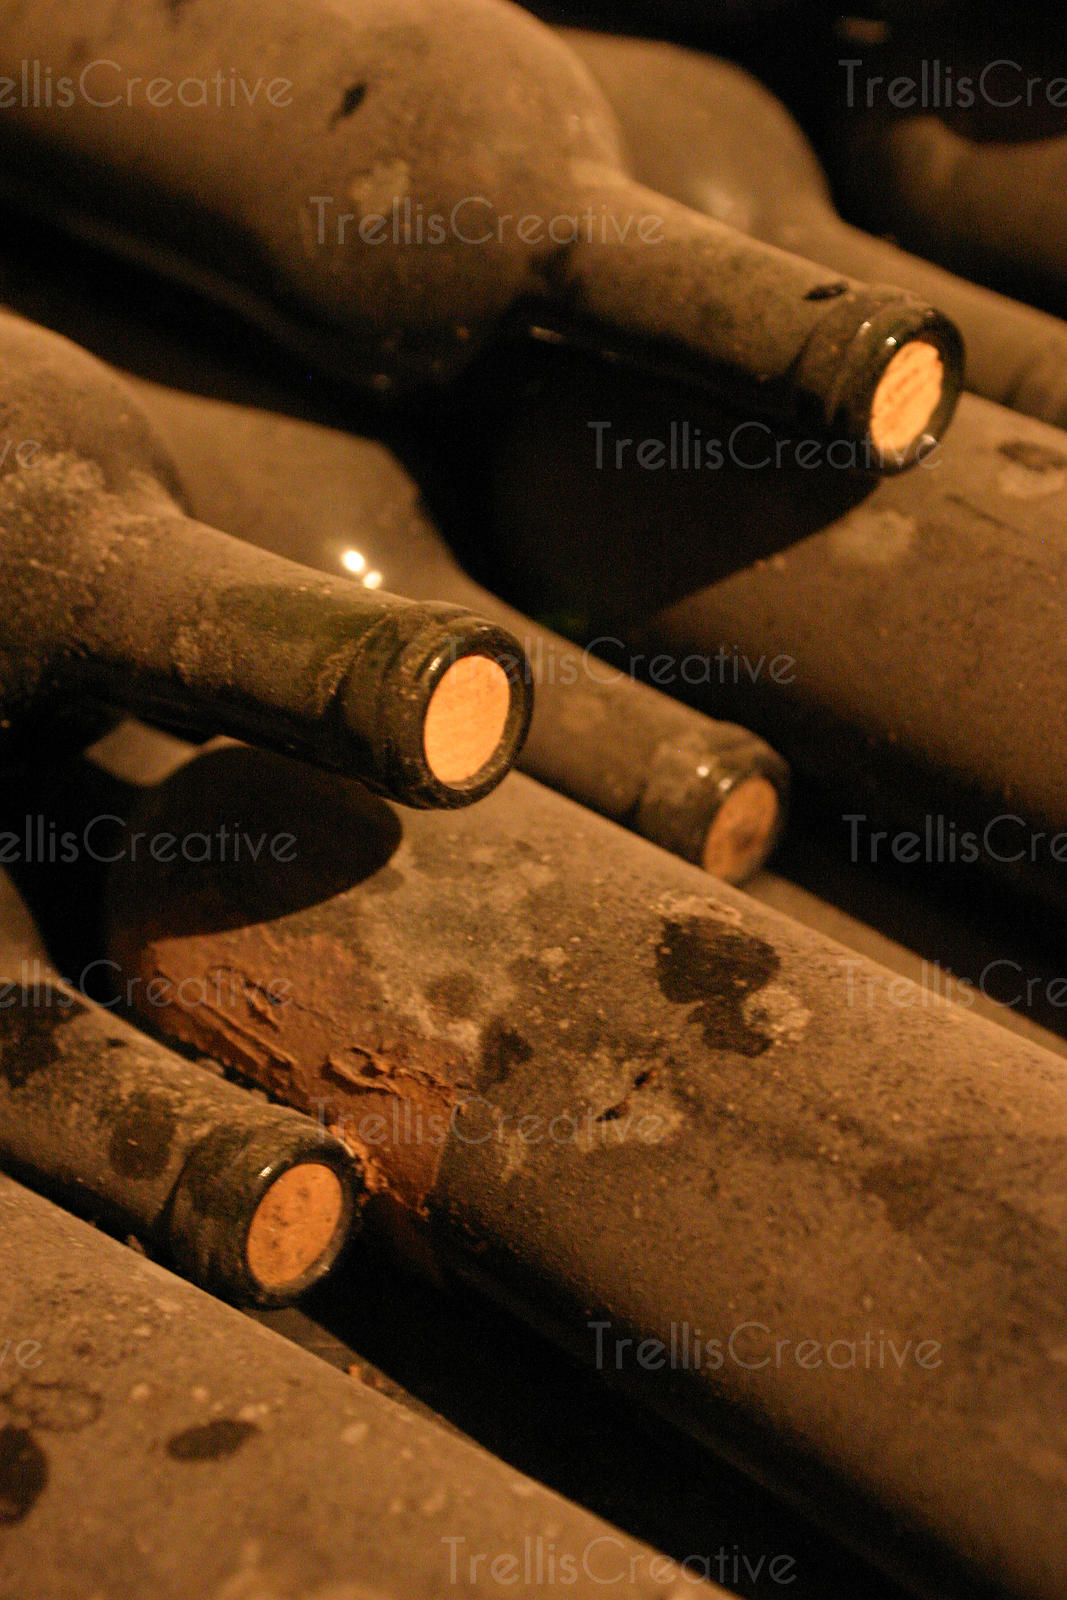 Ageing dusty bordeaux wine bottles in a winery cave